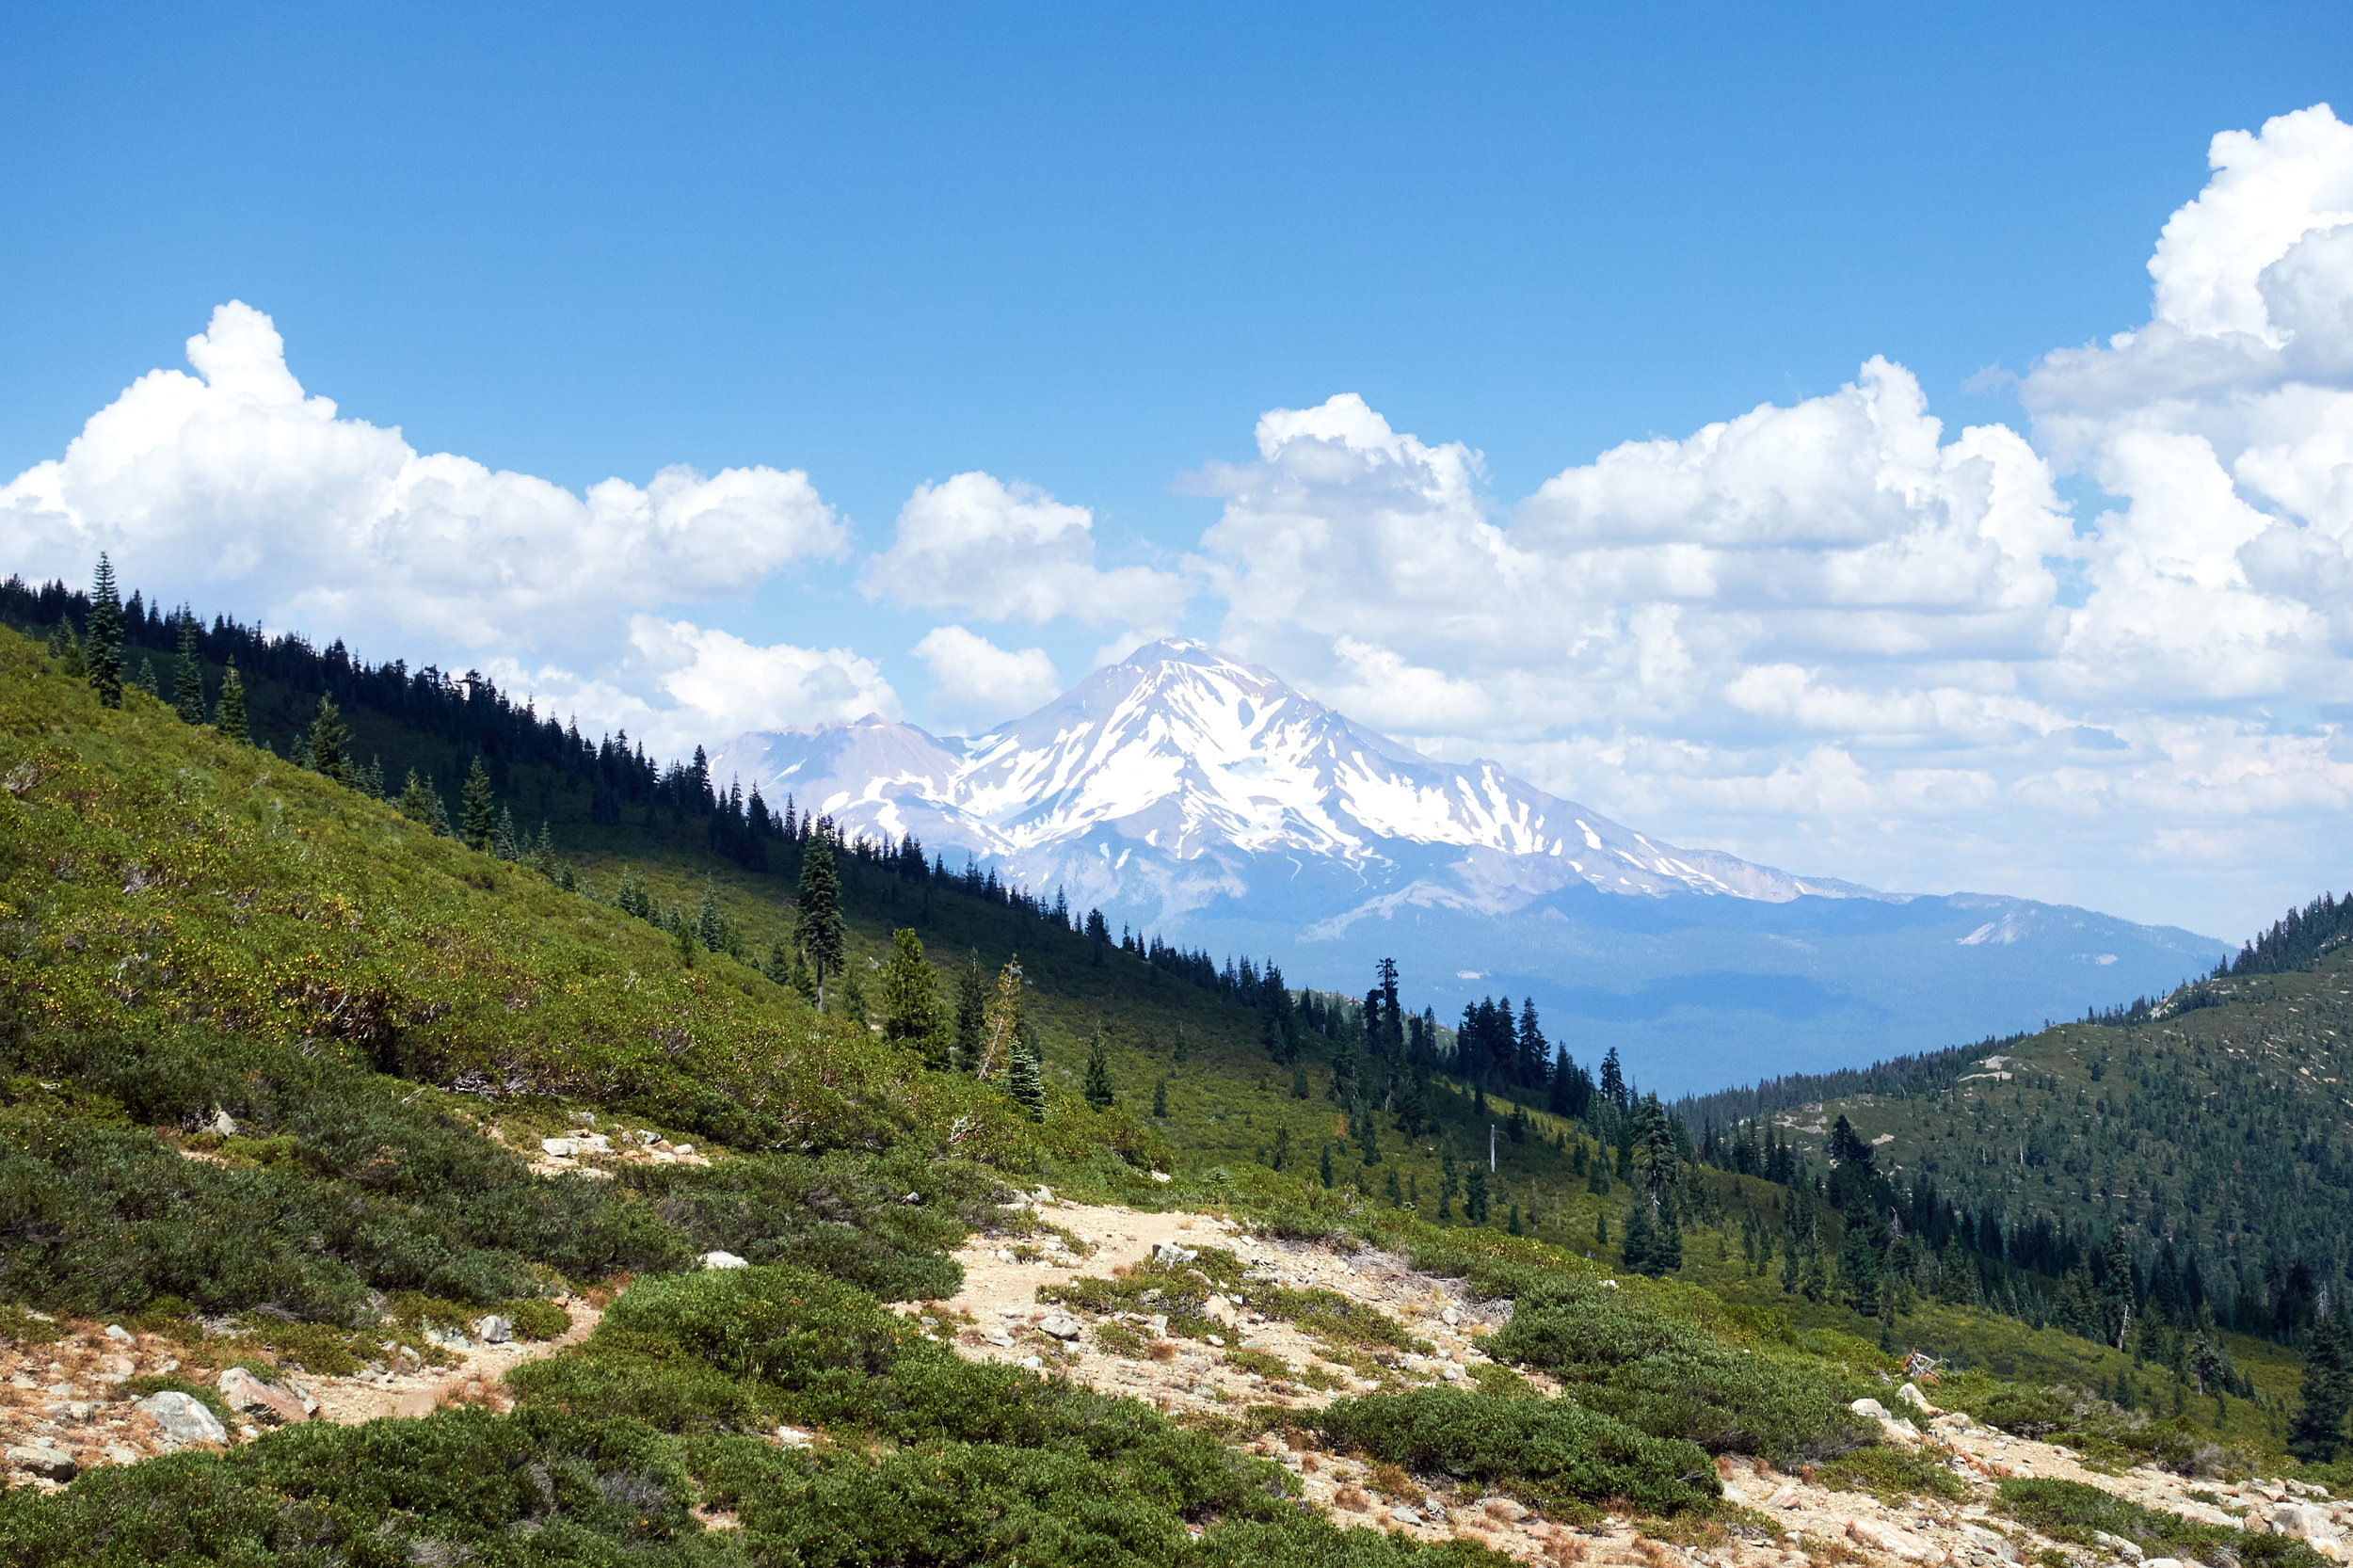 Views of Mt Shasta from the trail.